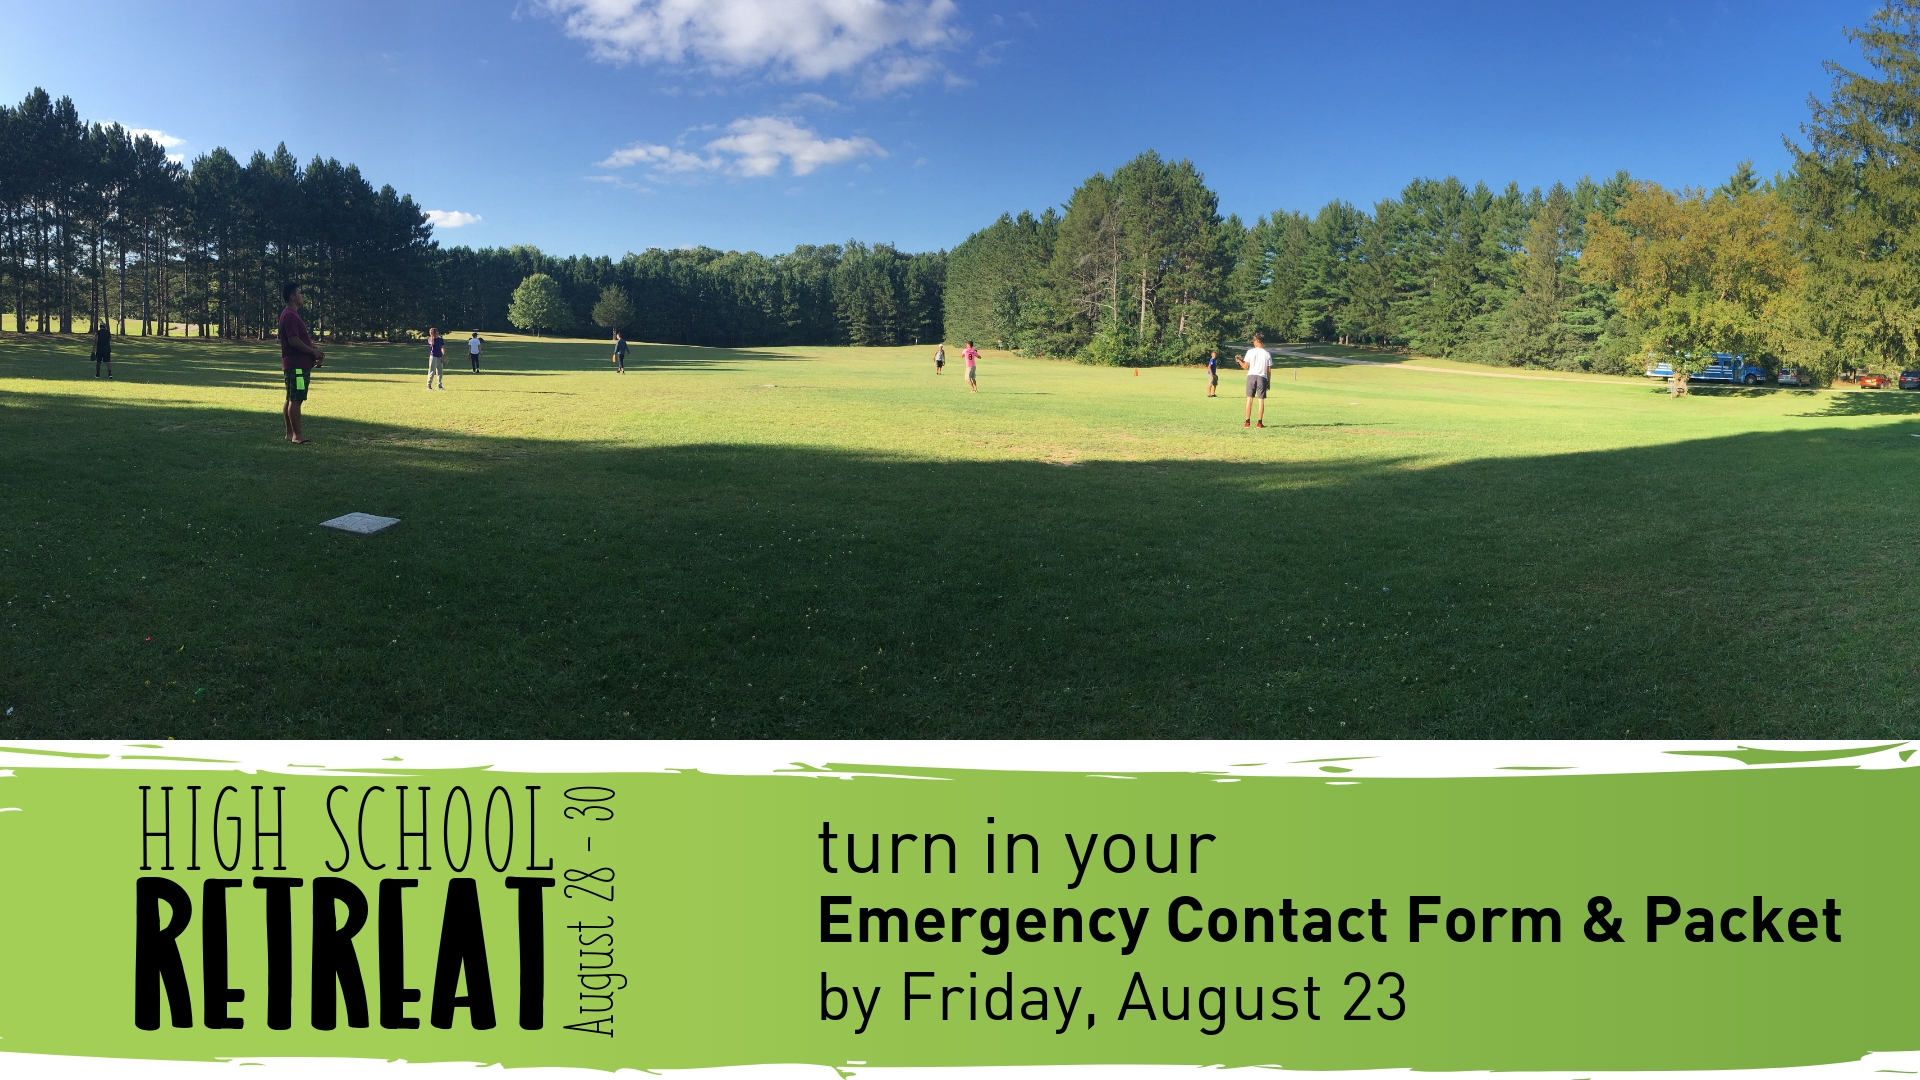 High School Retreat is from Aug 28-30  |  Please turn in all required forms.